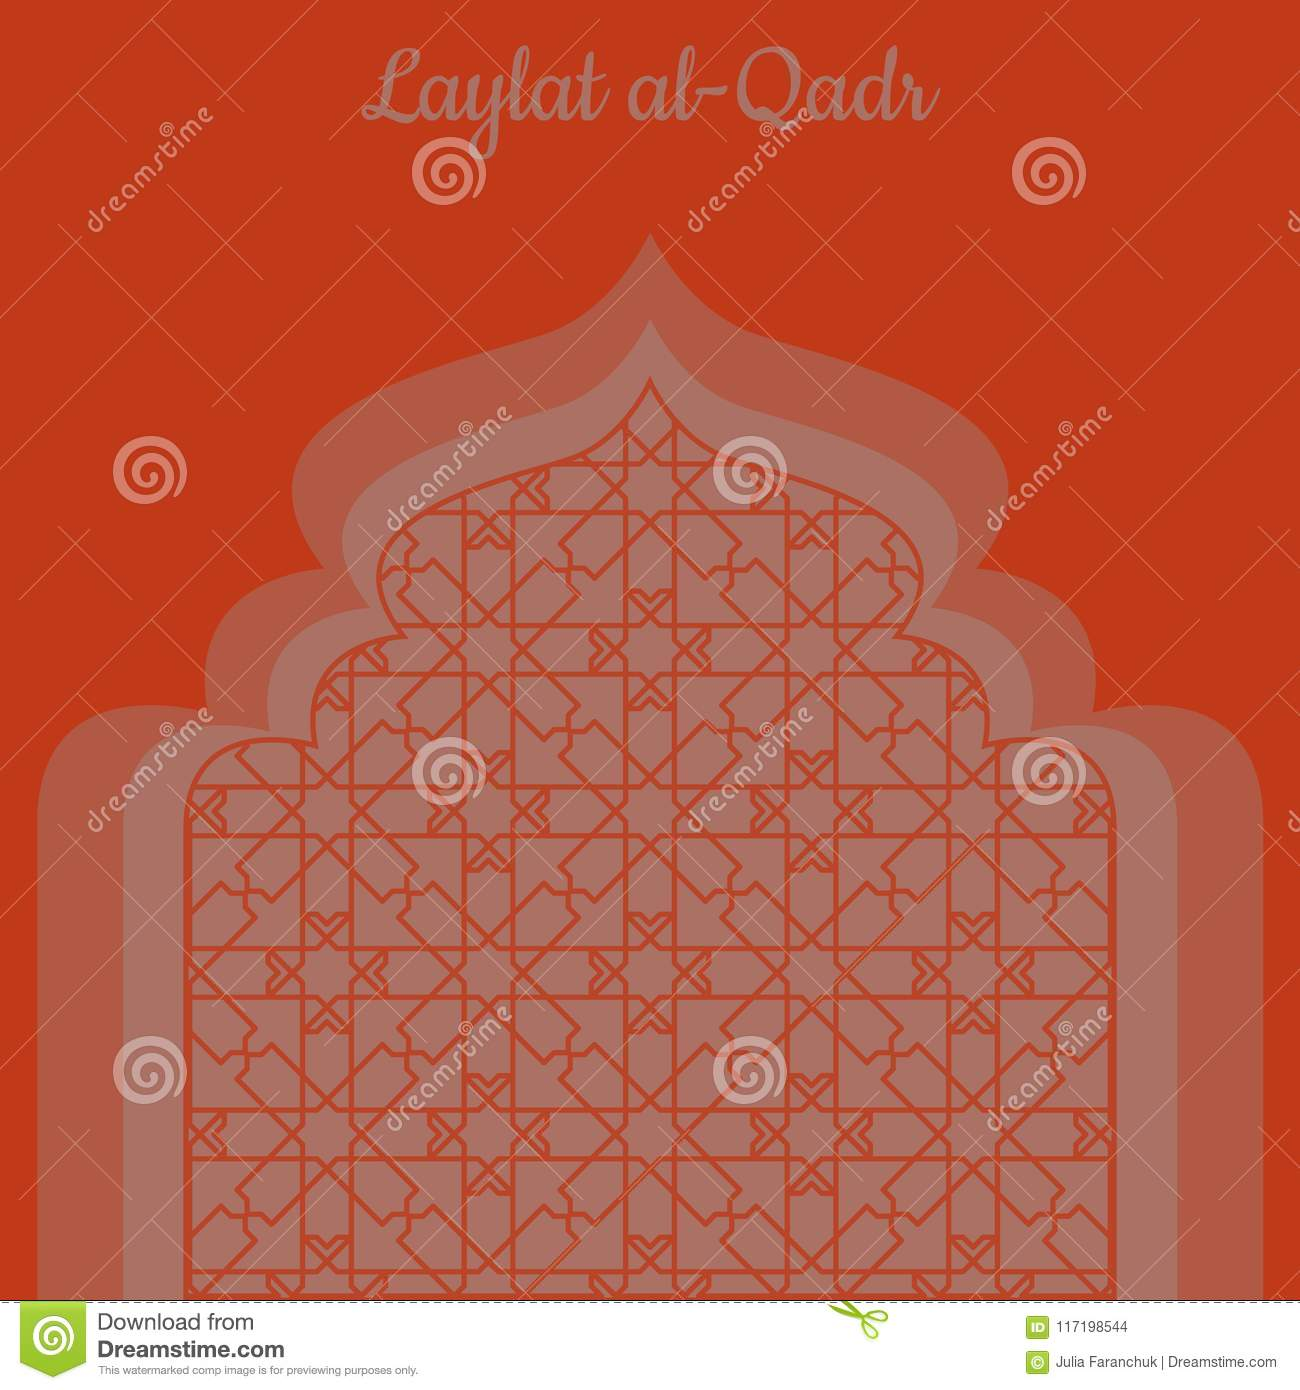 Laylat Al Qadr Islamic Religion Holiday Symbolic Silhouette Of The